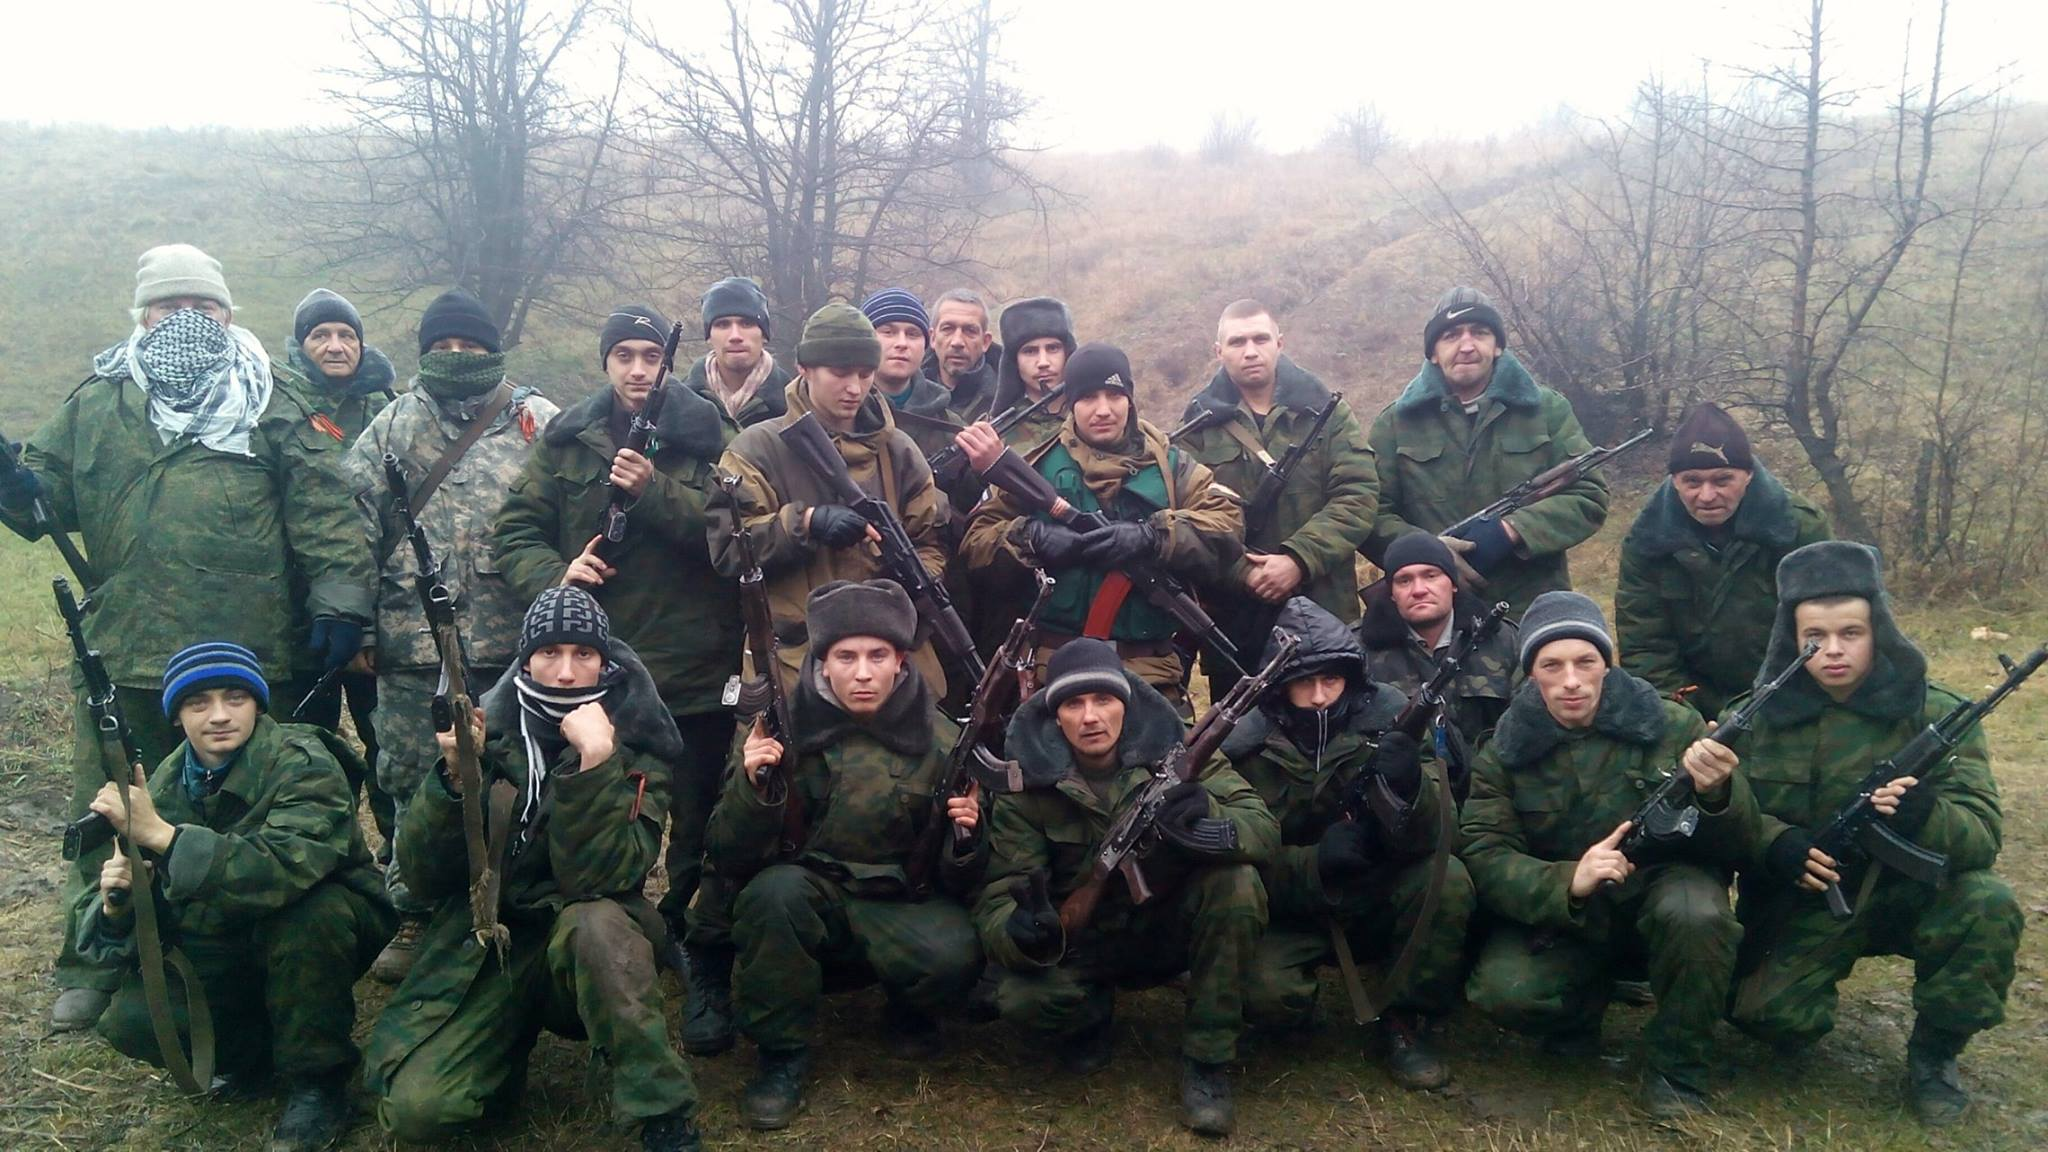 """'Novi partisani', posing in a frigid morning. """"Filin"""", """"The Owl"""".  Instructor for Vostok Brigade at Yasynuvata. That's him in the middle of the second row, looking down.  He was from Makeevka, DNR.  Died on 16 November defending his homeland against US-backed Nazis.  He was 22 years old and recently married to Julia. RESPECT, Brother."""